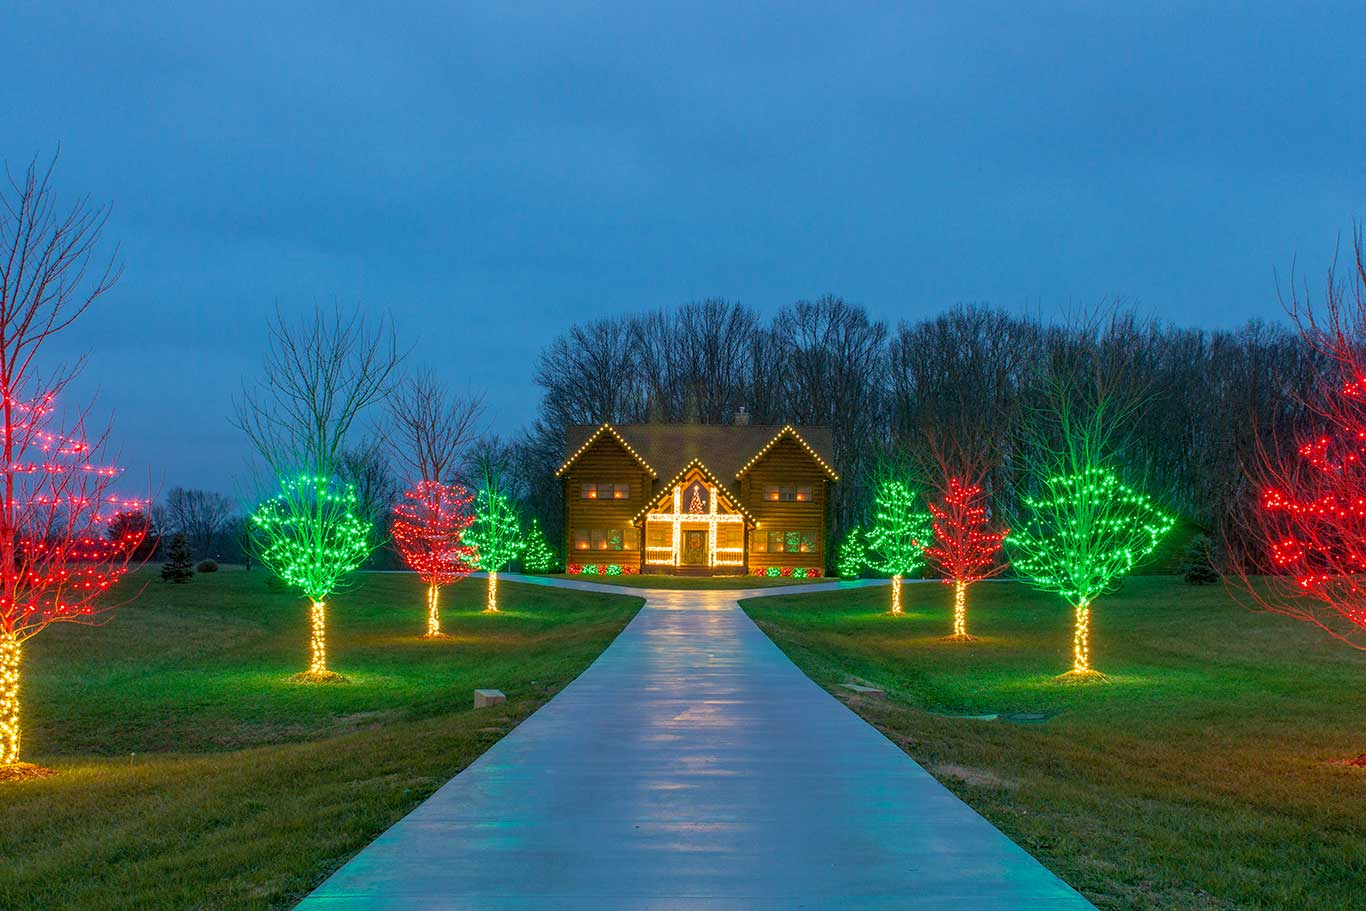 nashville holiday lighting service - Holiday Christmas Lights